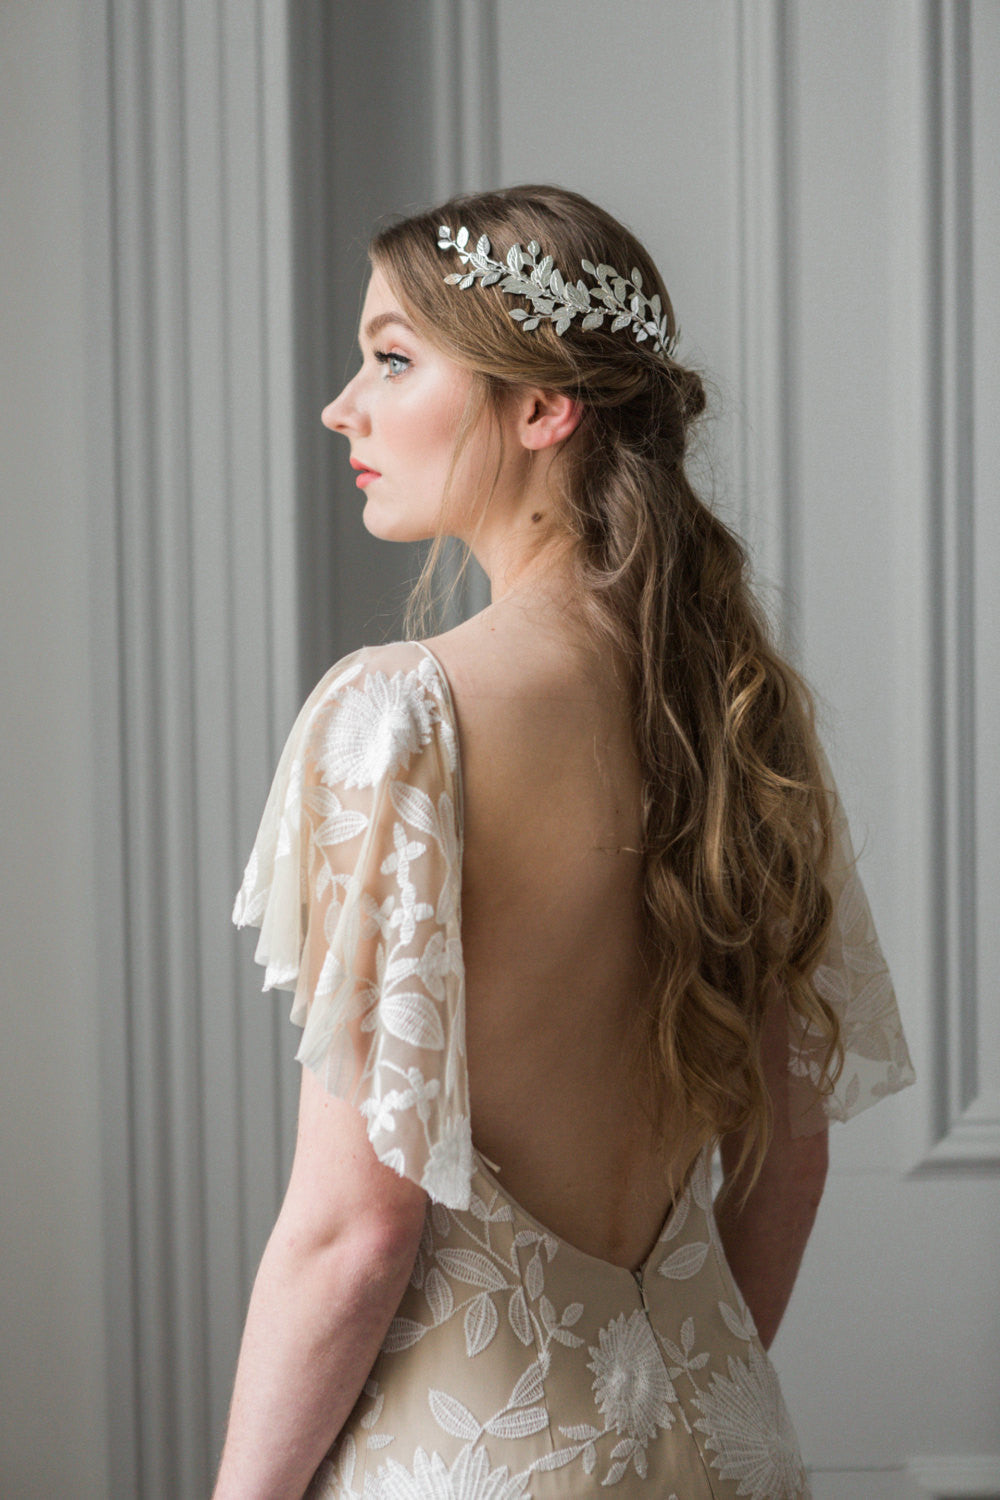 Model in wedding dress wearing a silver bridal headpiece